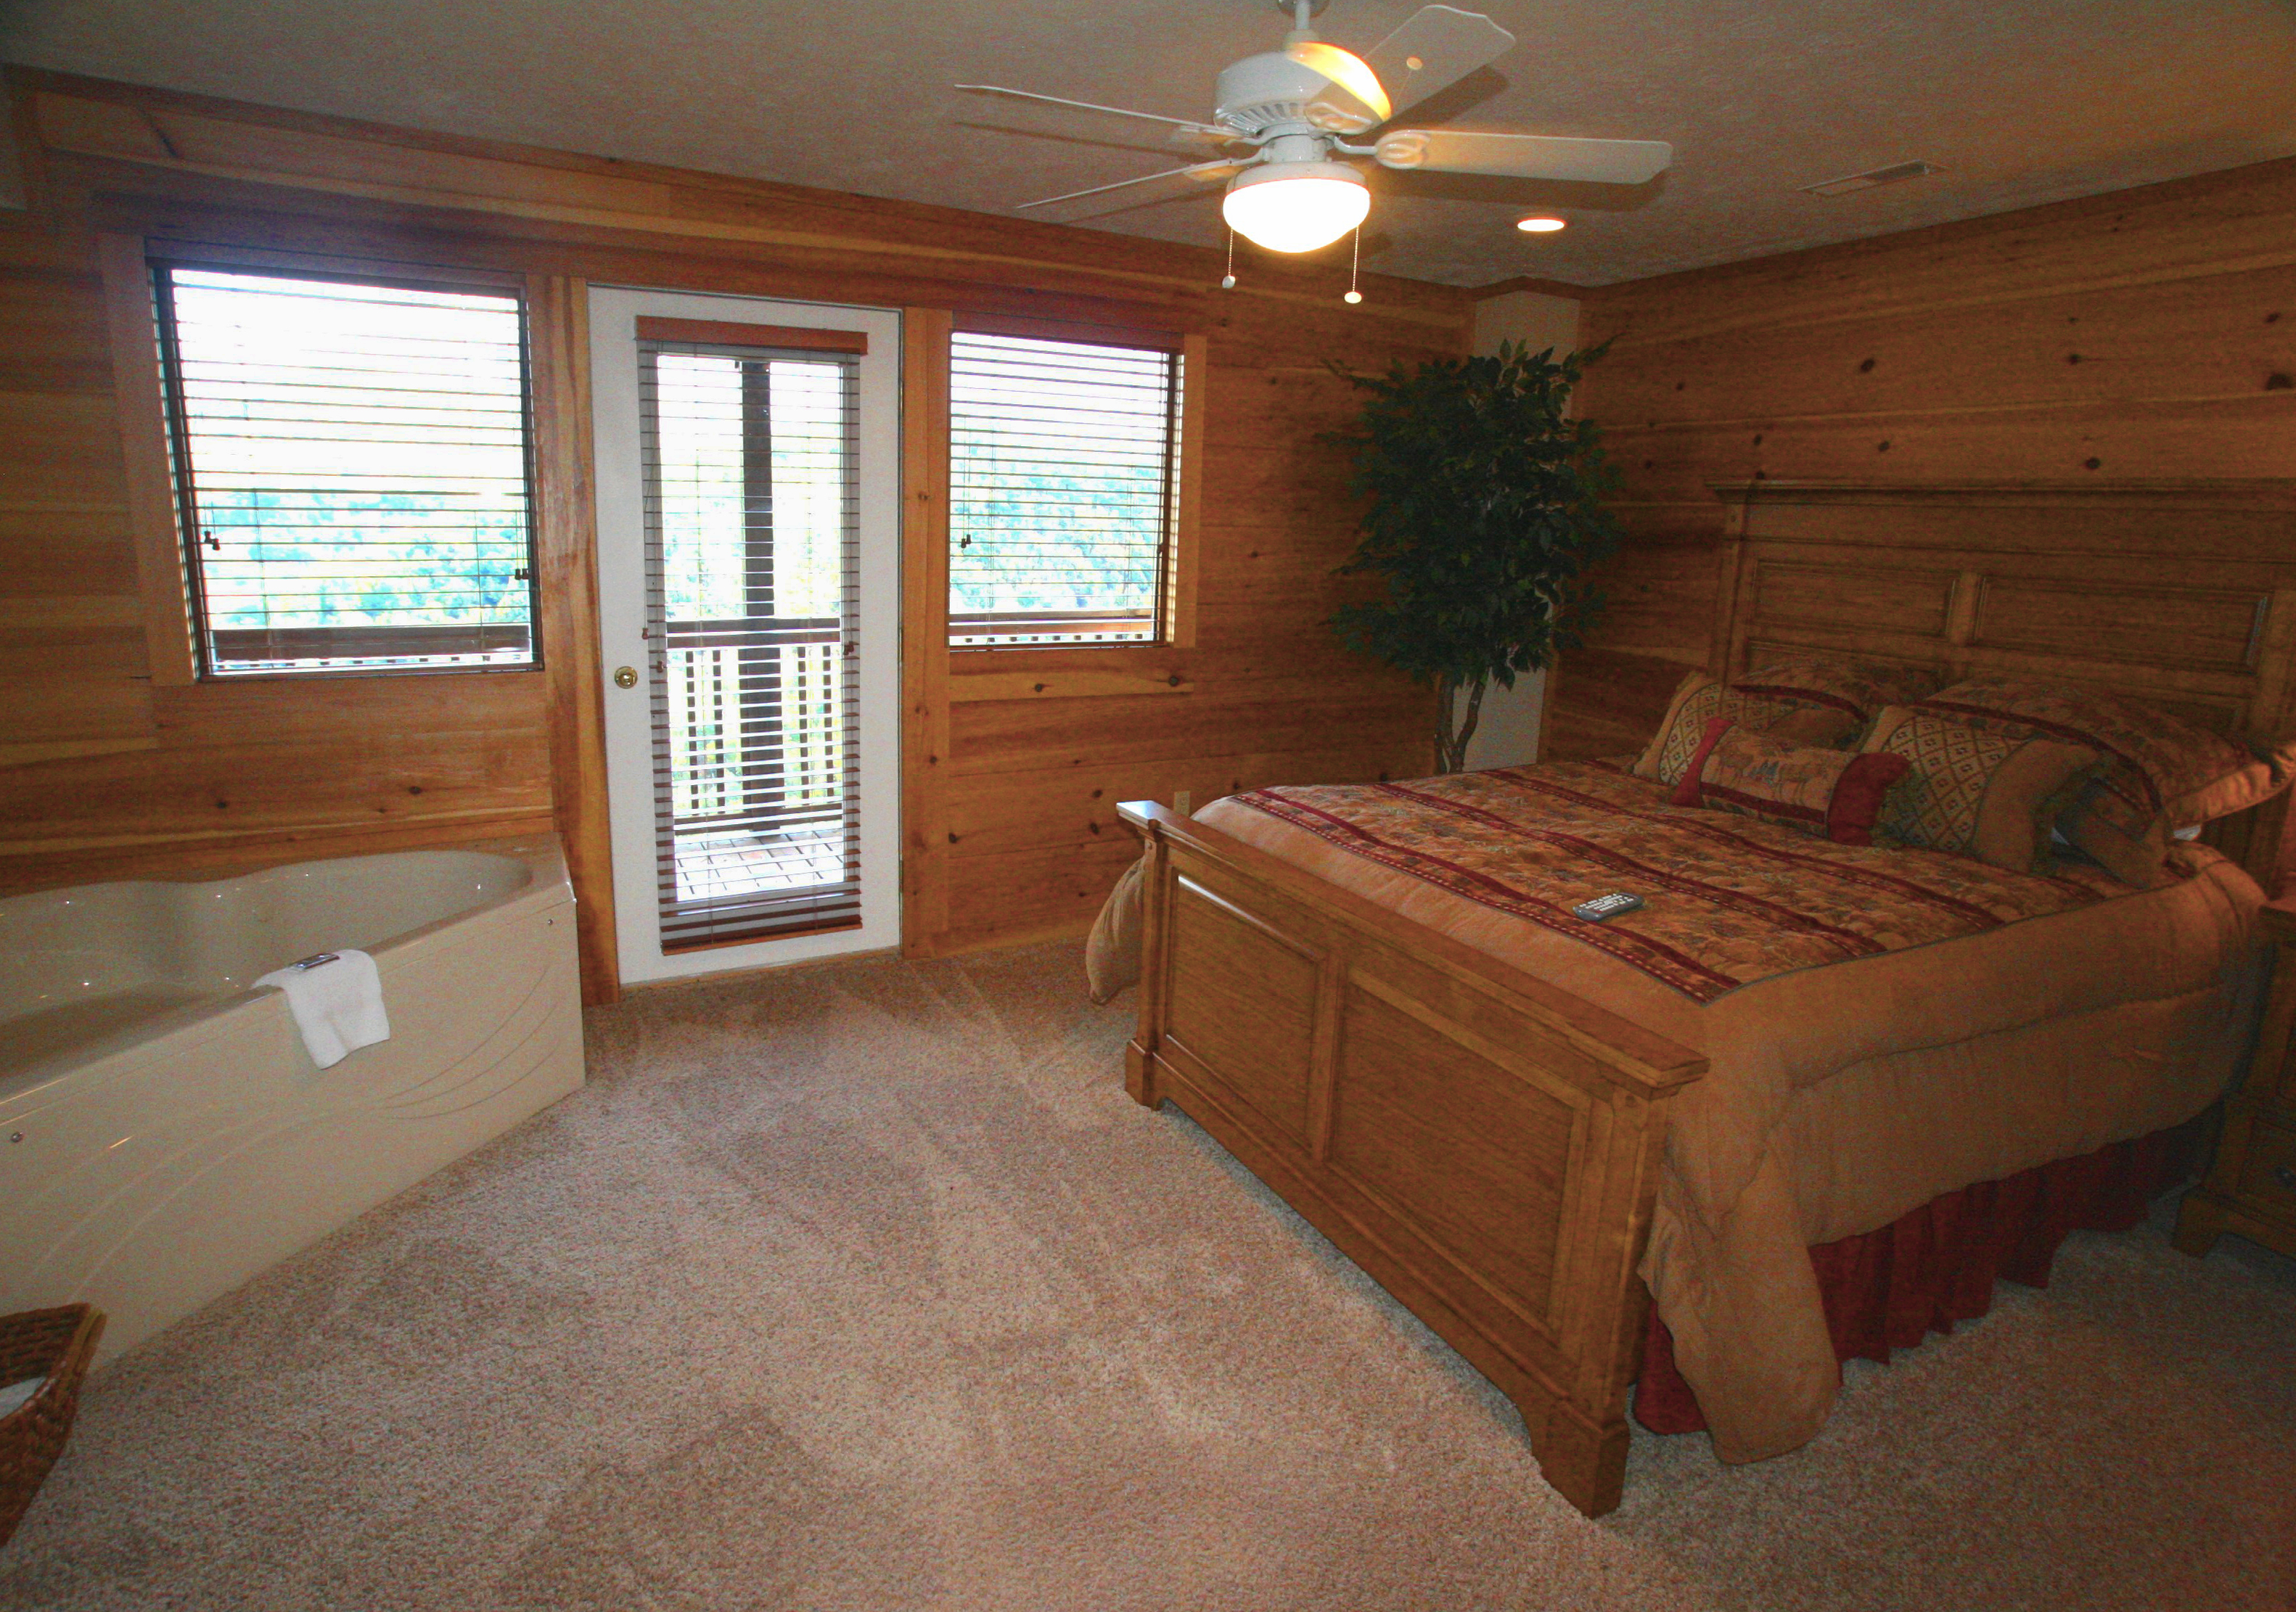 EAGLES NEST Bedroom 2